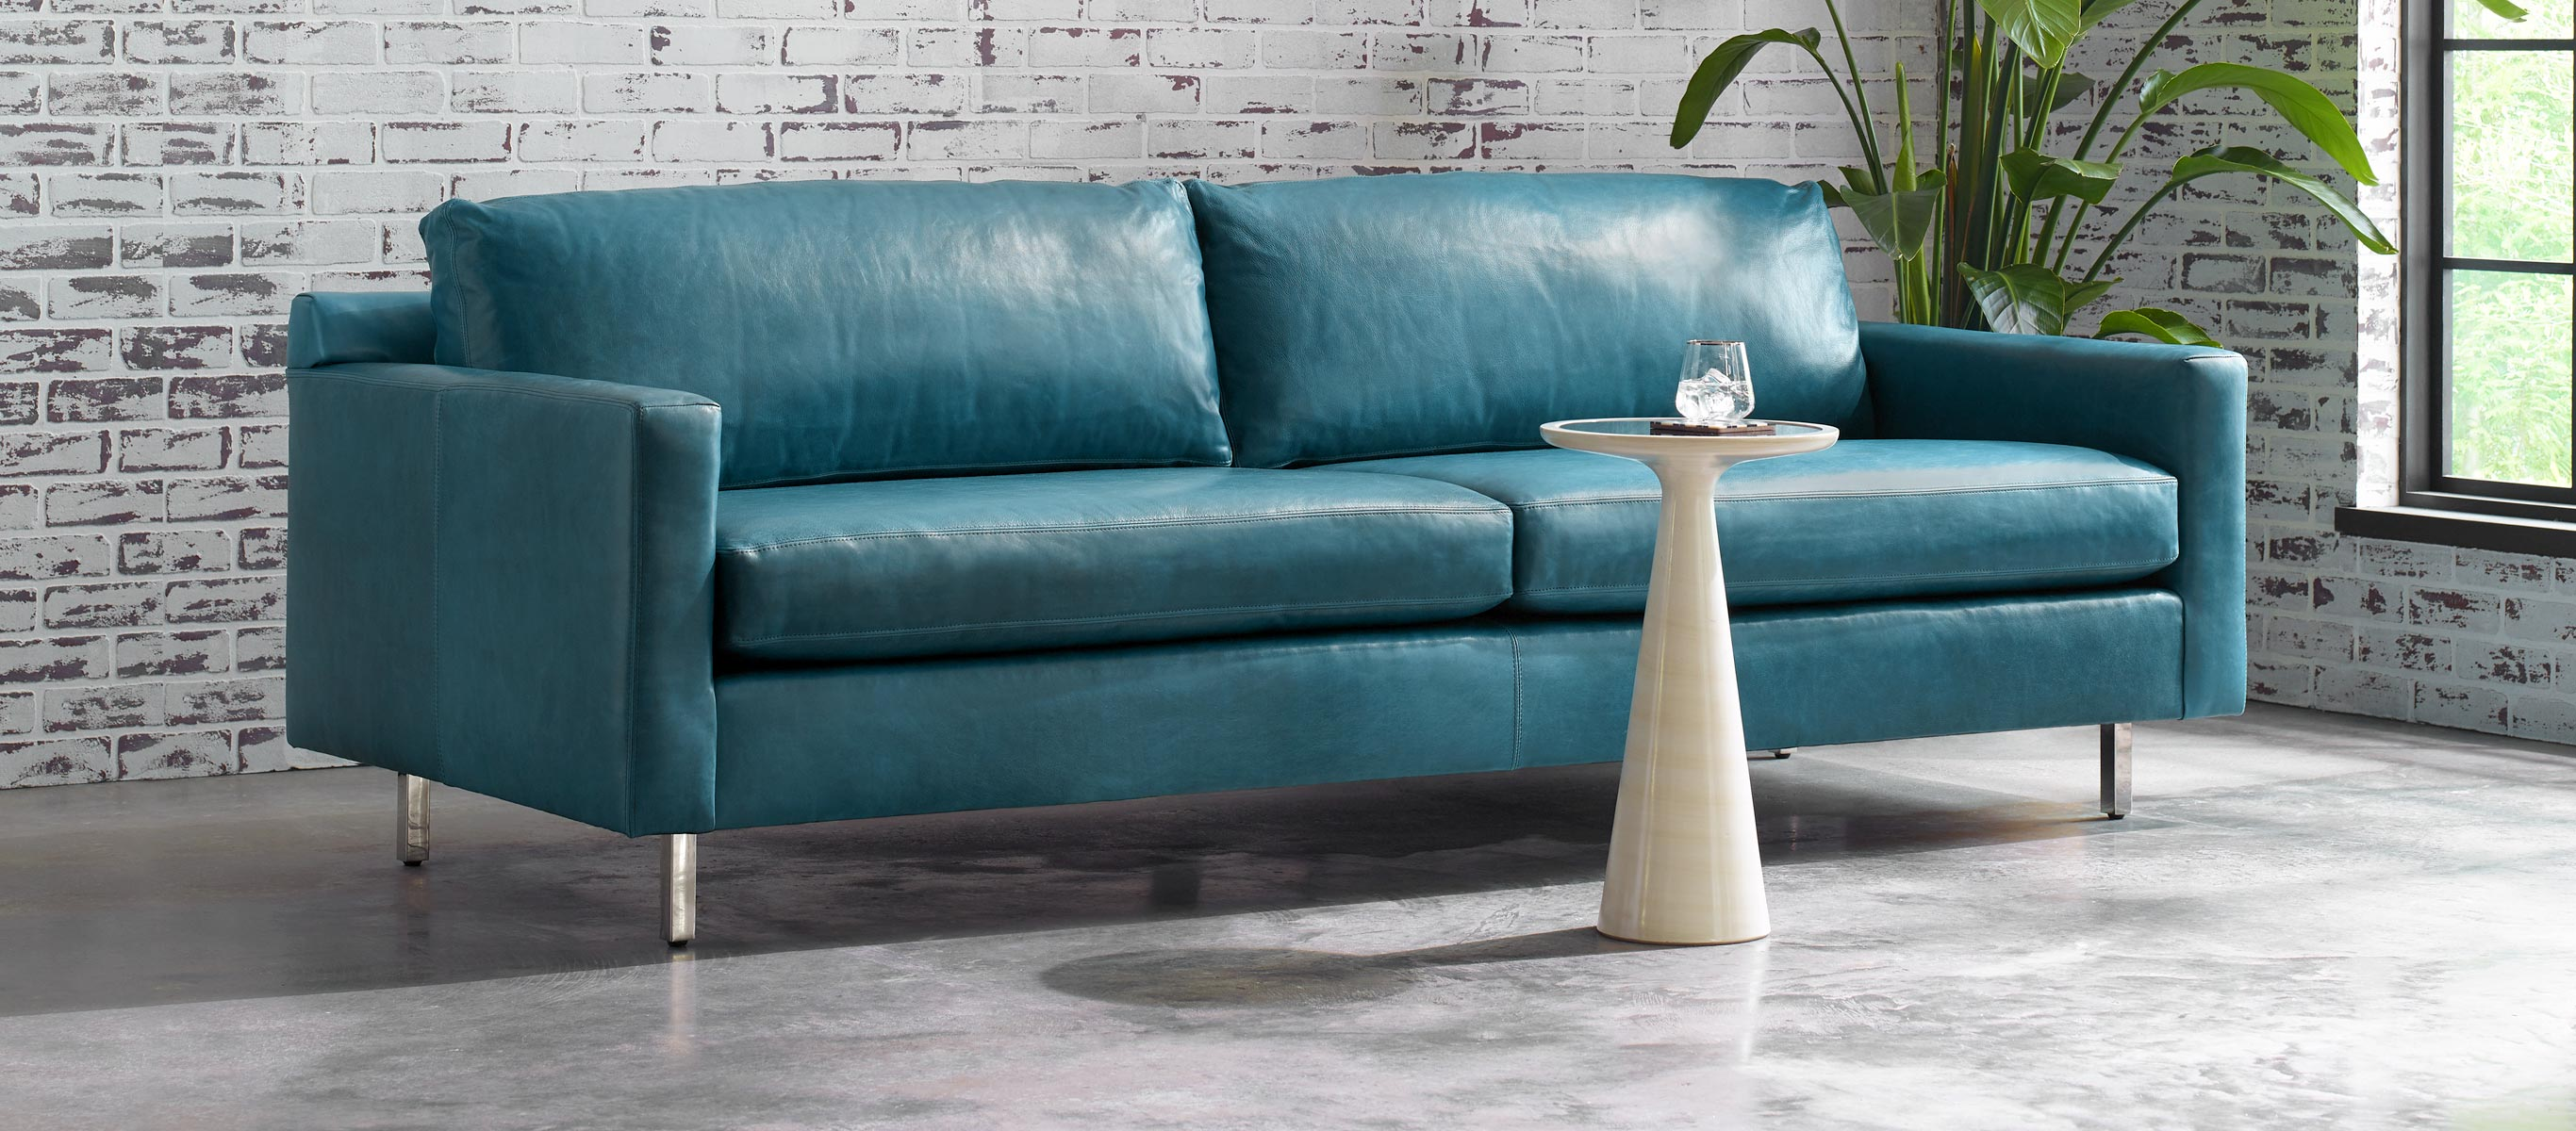 Hunter Leather Sofa in Mont Blanc - Mountain Spring, a blue leather.